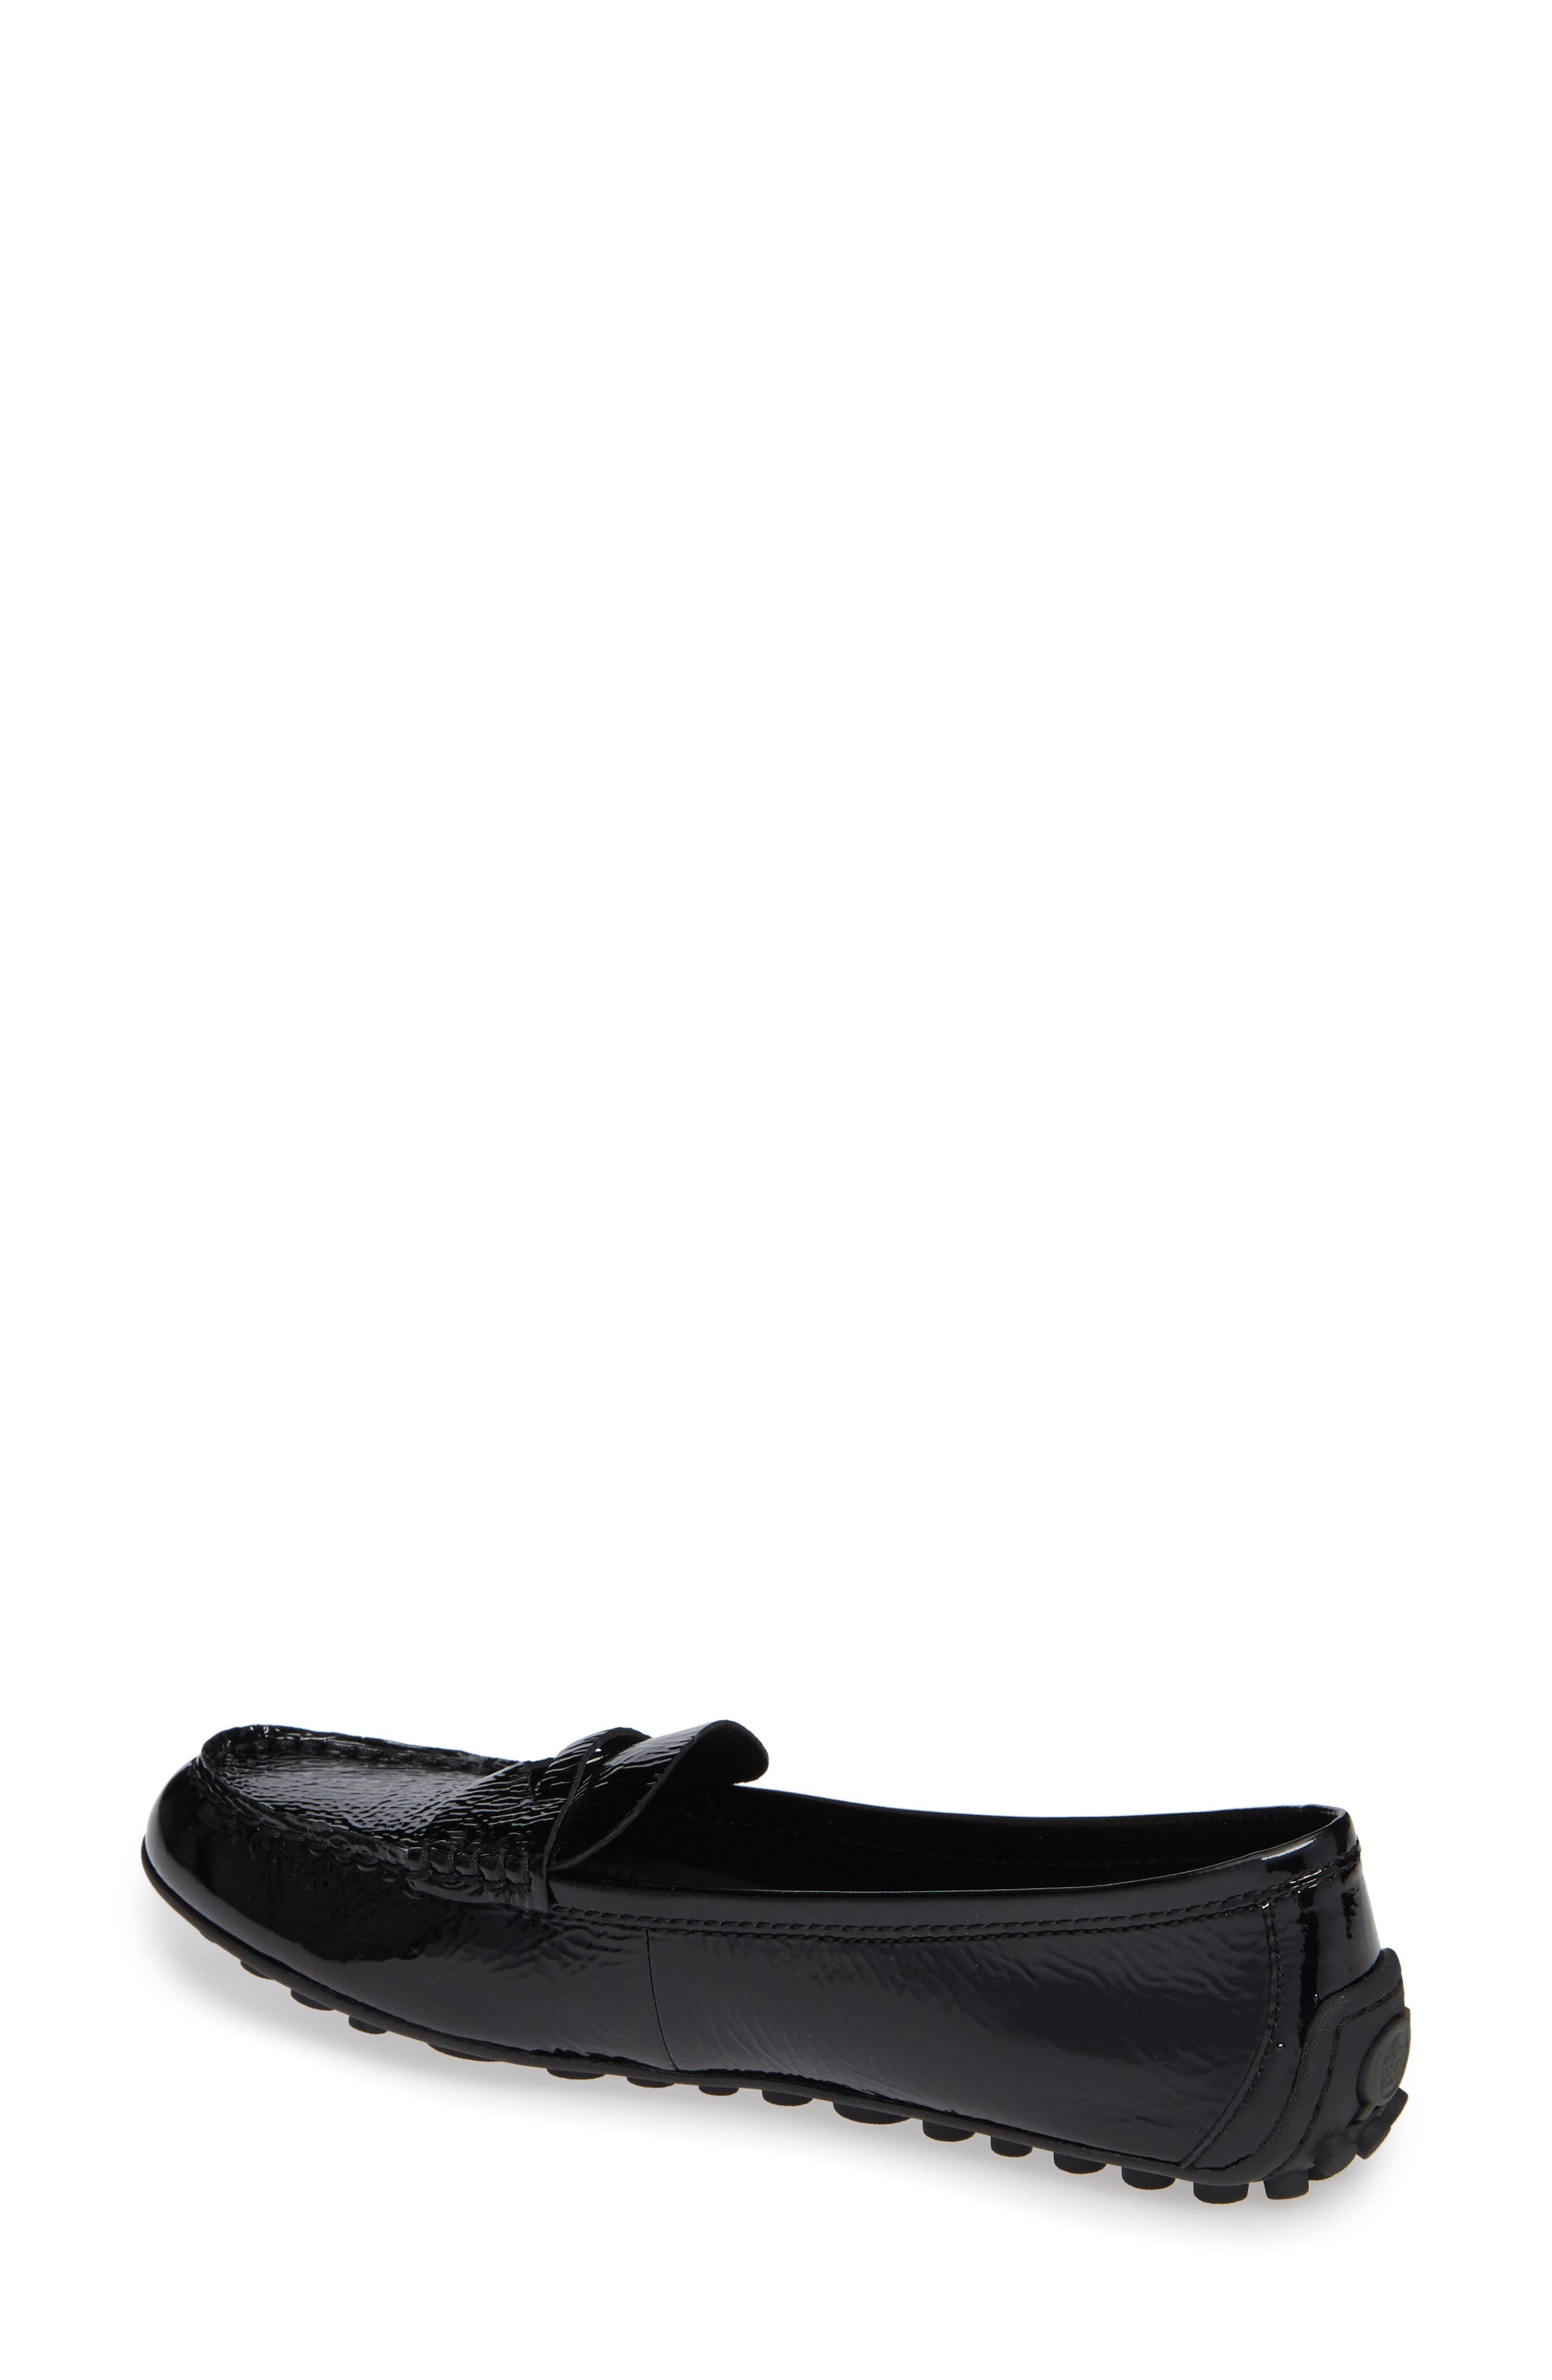 Malena Driving Loafer,                             Alternate thumbnail 2, color,                             BLACK PATENT LEATHER